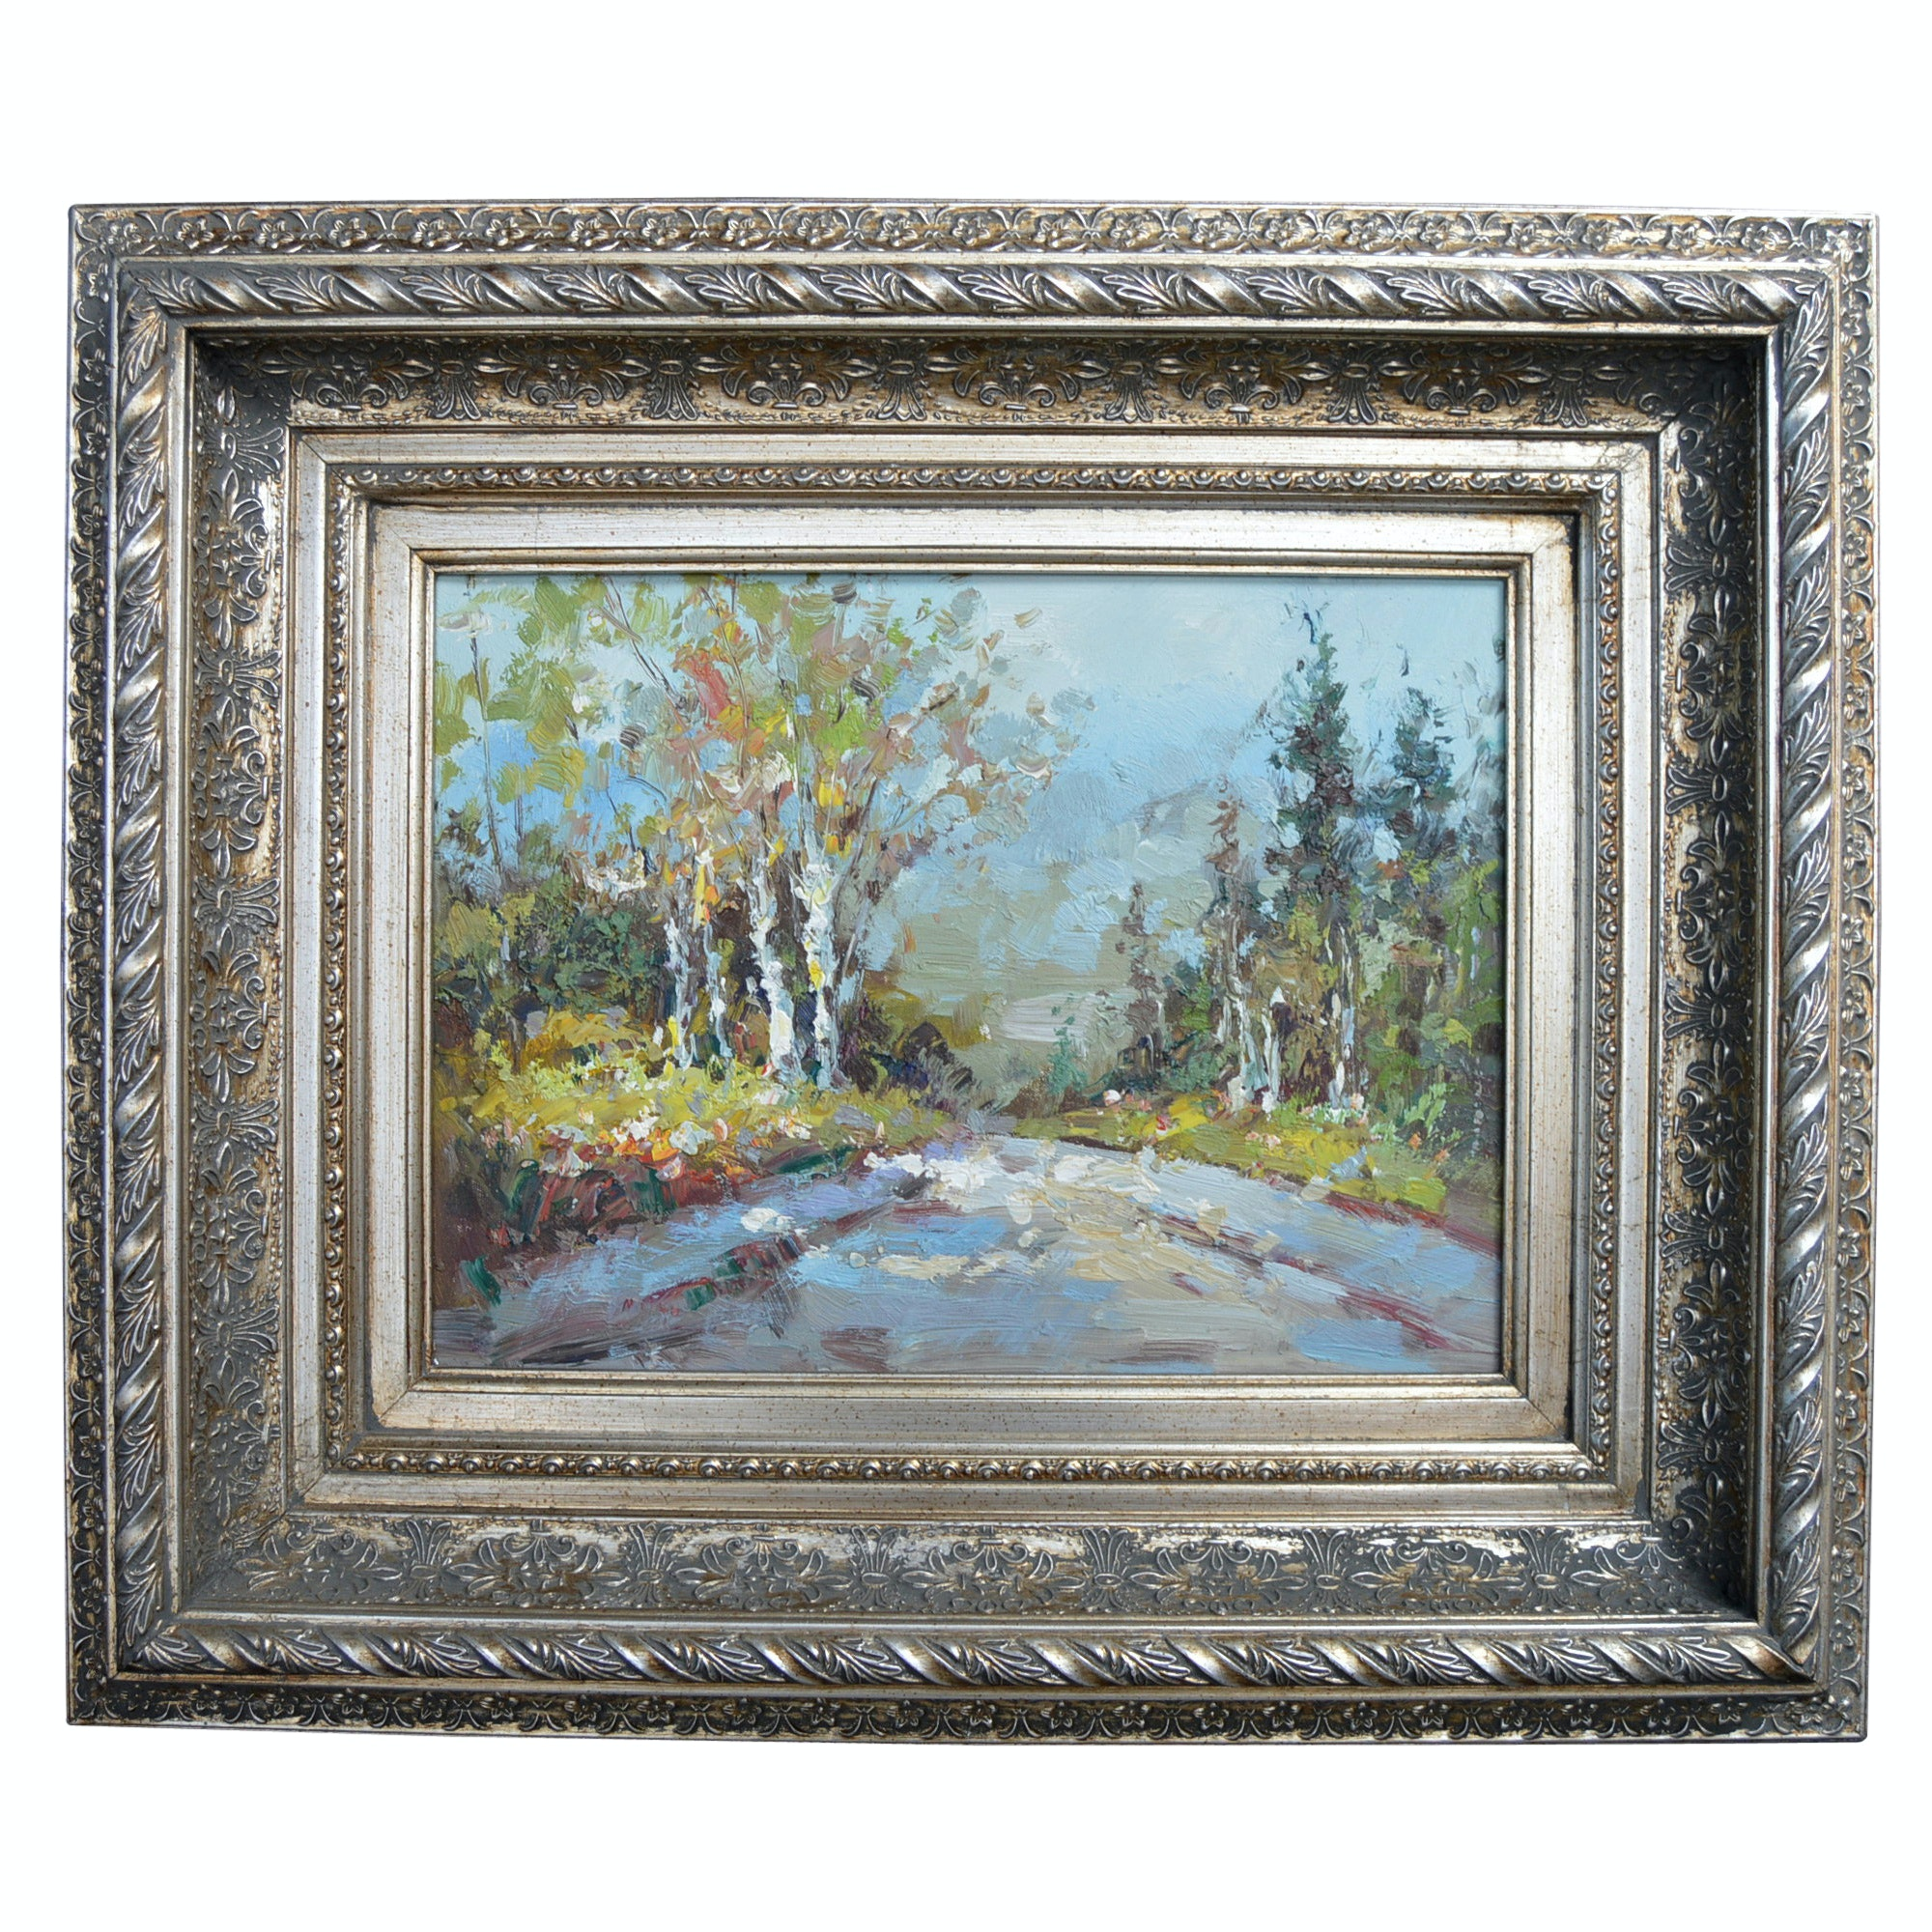 Original Oil on Canvas Landscape Painting